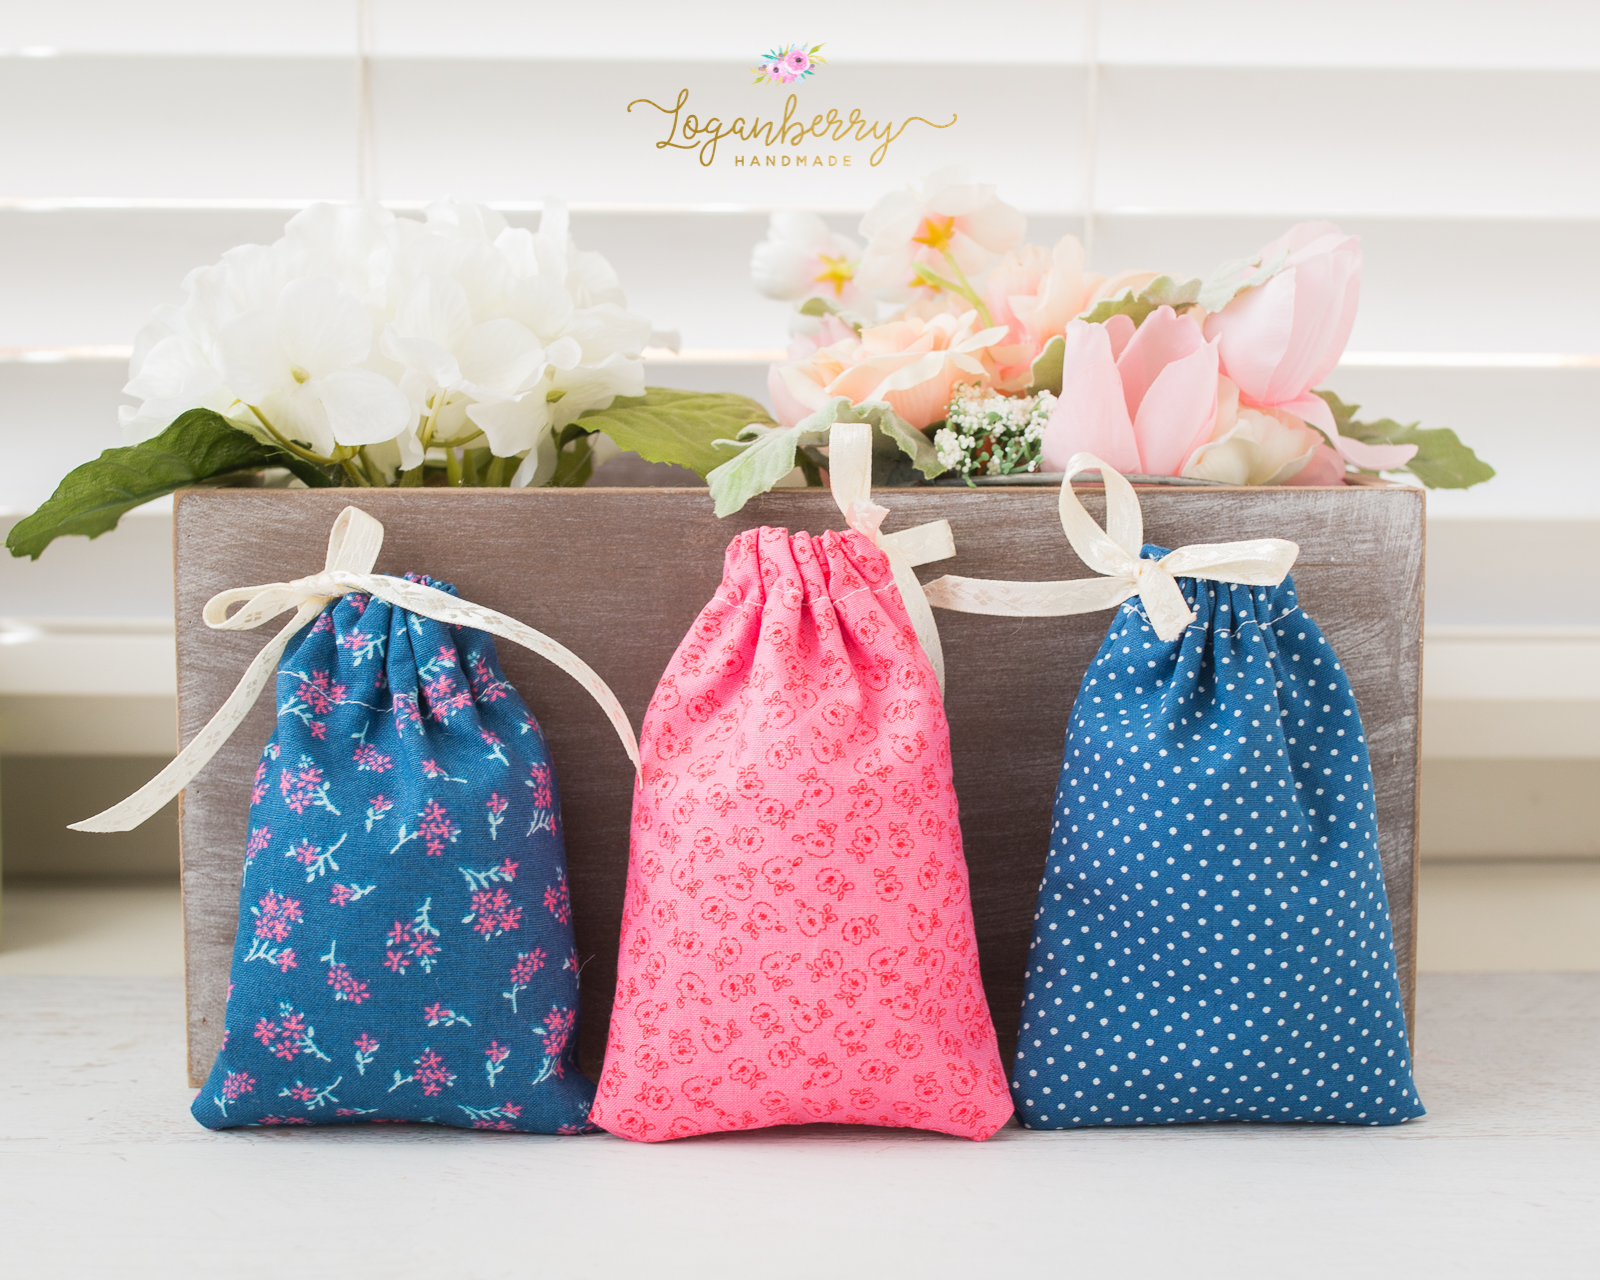 5 Minute Gift Bags Loganberry Handmade